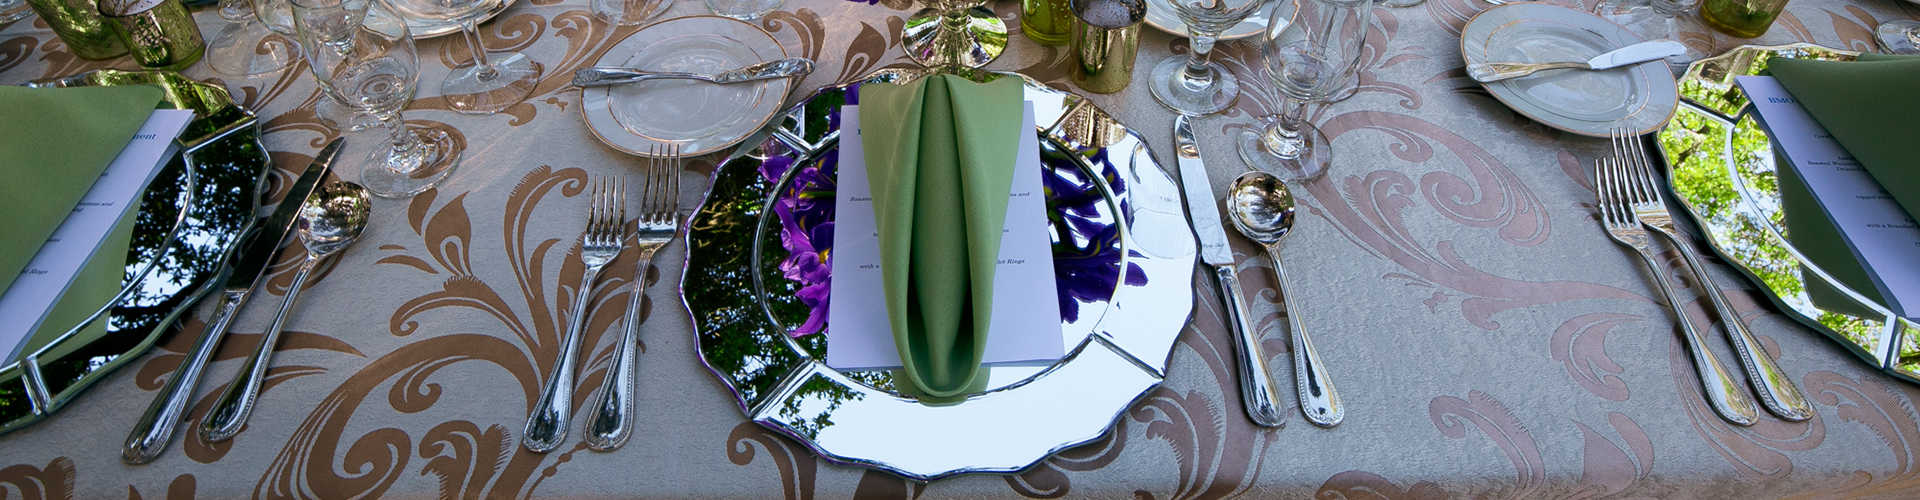 Banquet Rentals in the New Orleans area